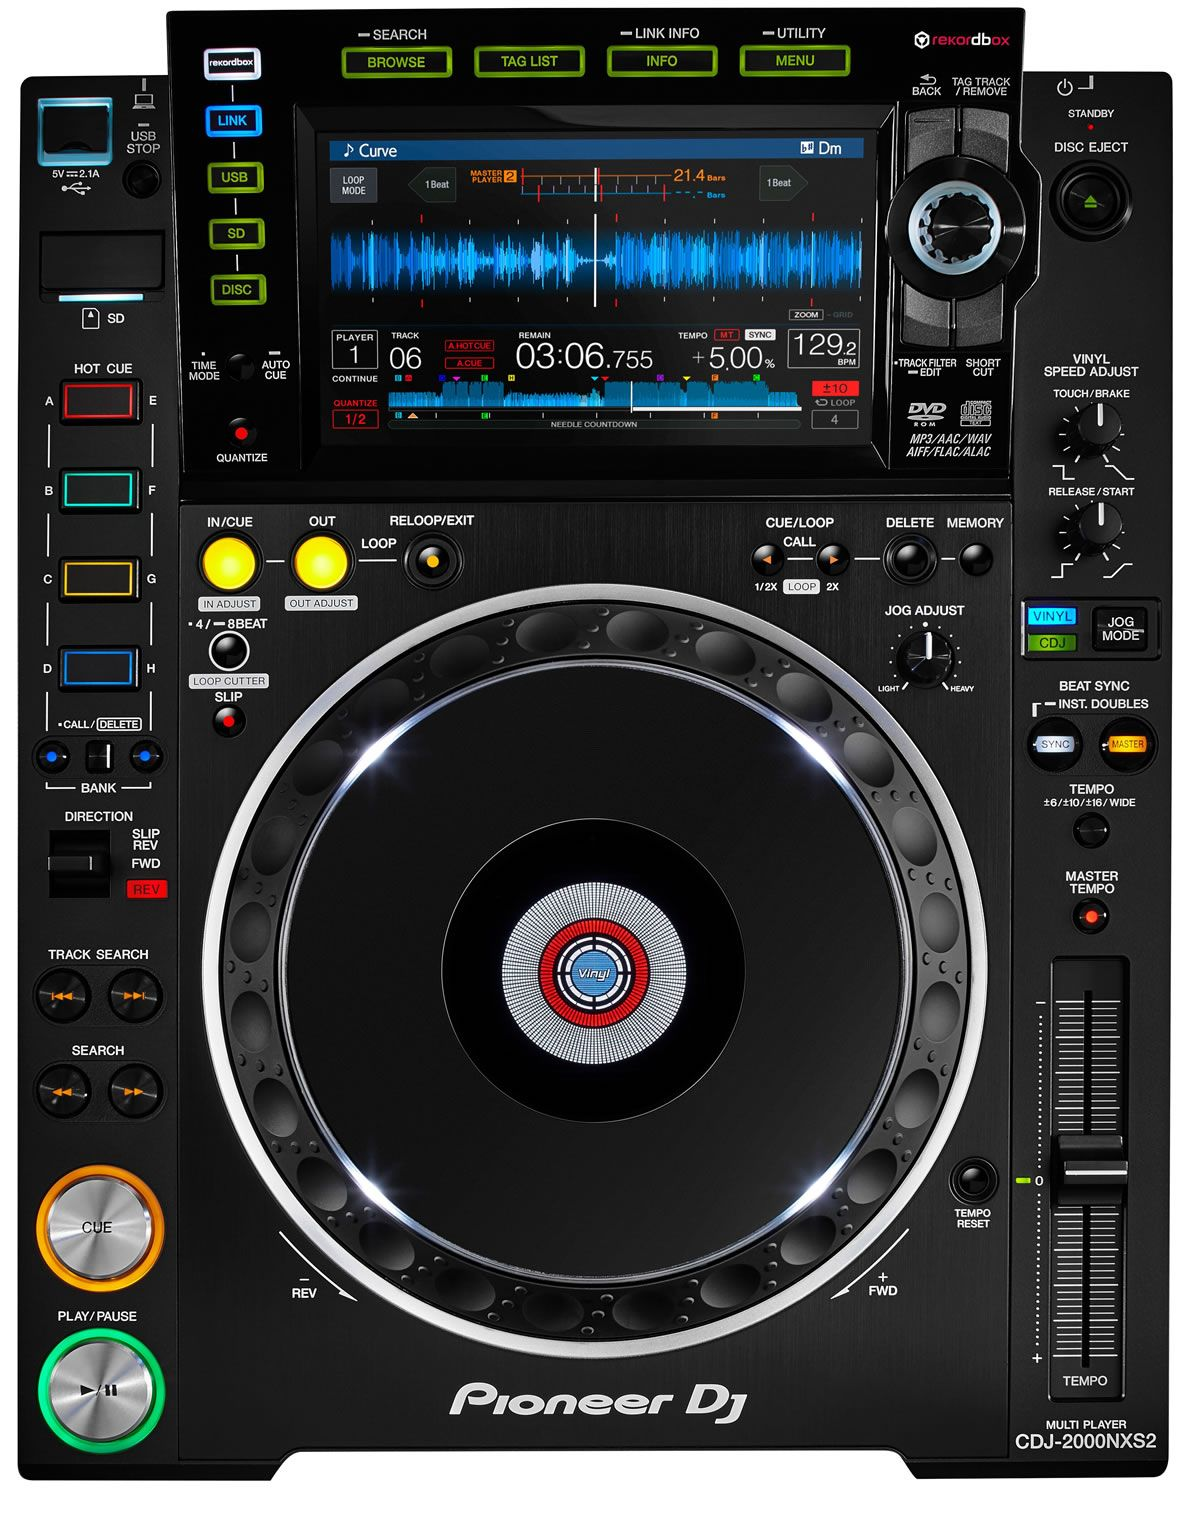 Pioneer CDJ-2000NXS2 DJ Player Windows 8 X64